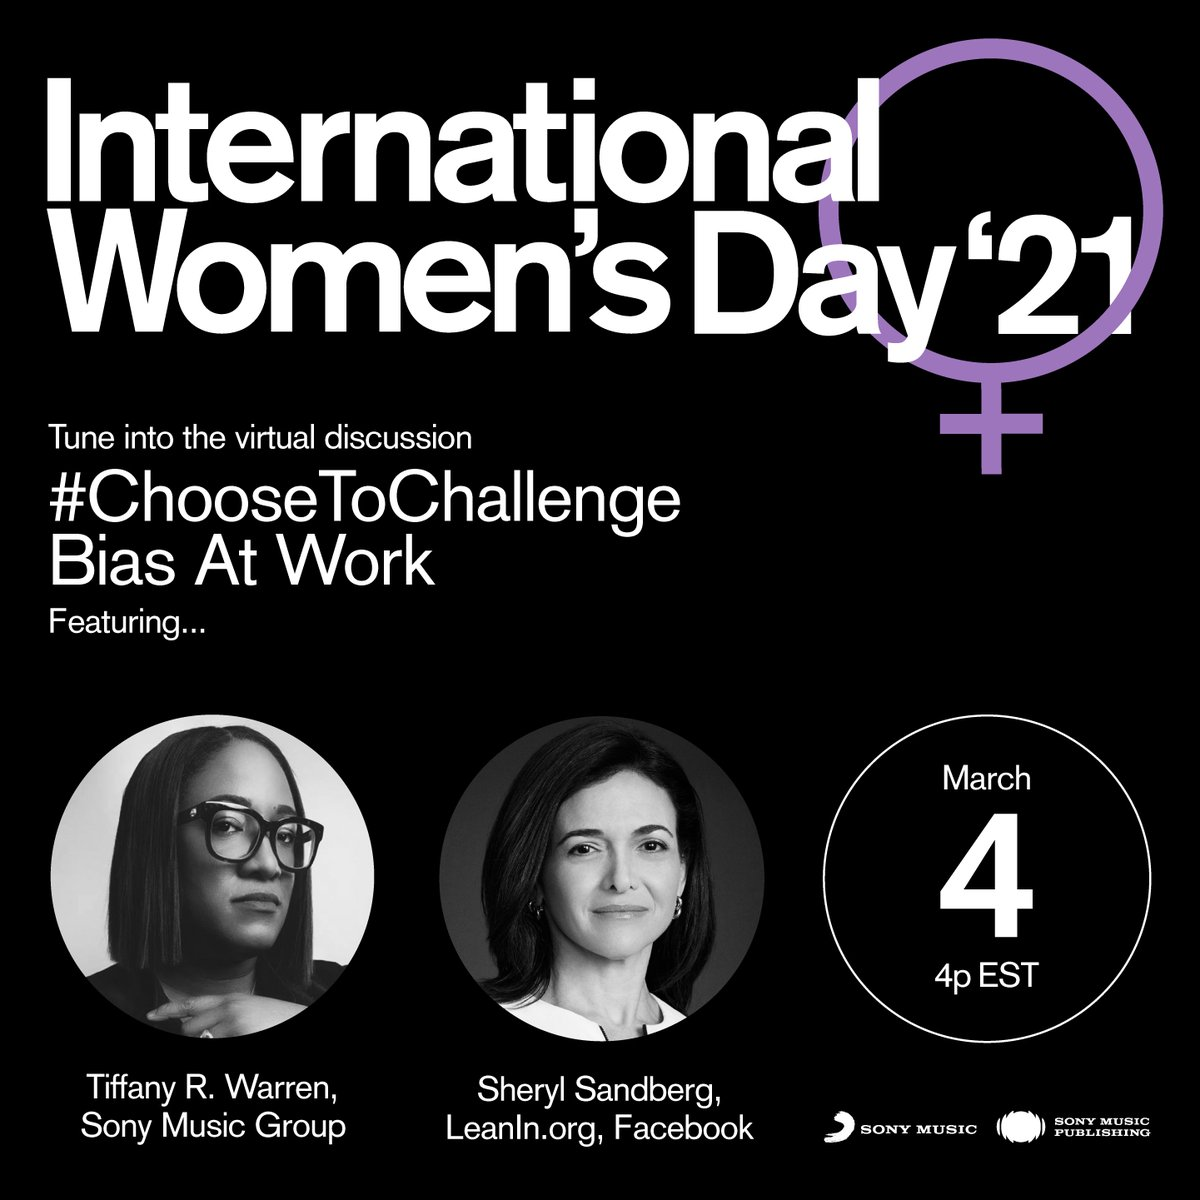 Today at 4 pm EST, tune into a discussion about challenging bias in the work place featuring Sony Music Group's Tiffany R. Warren (EVP, Chief Diversity & Inclusion Officer) and Sheryl Sandberg ( Founder, COO at Facebook). Watch here: